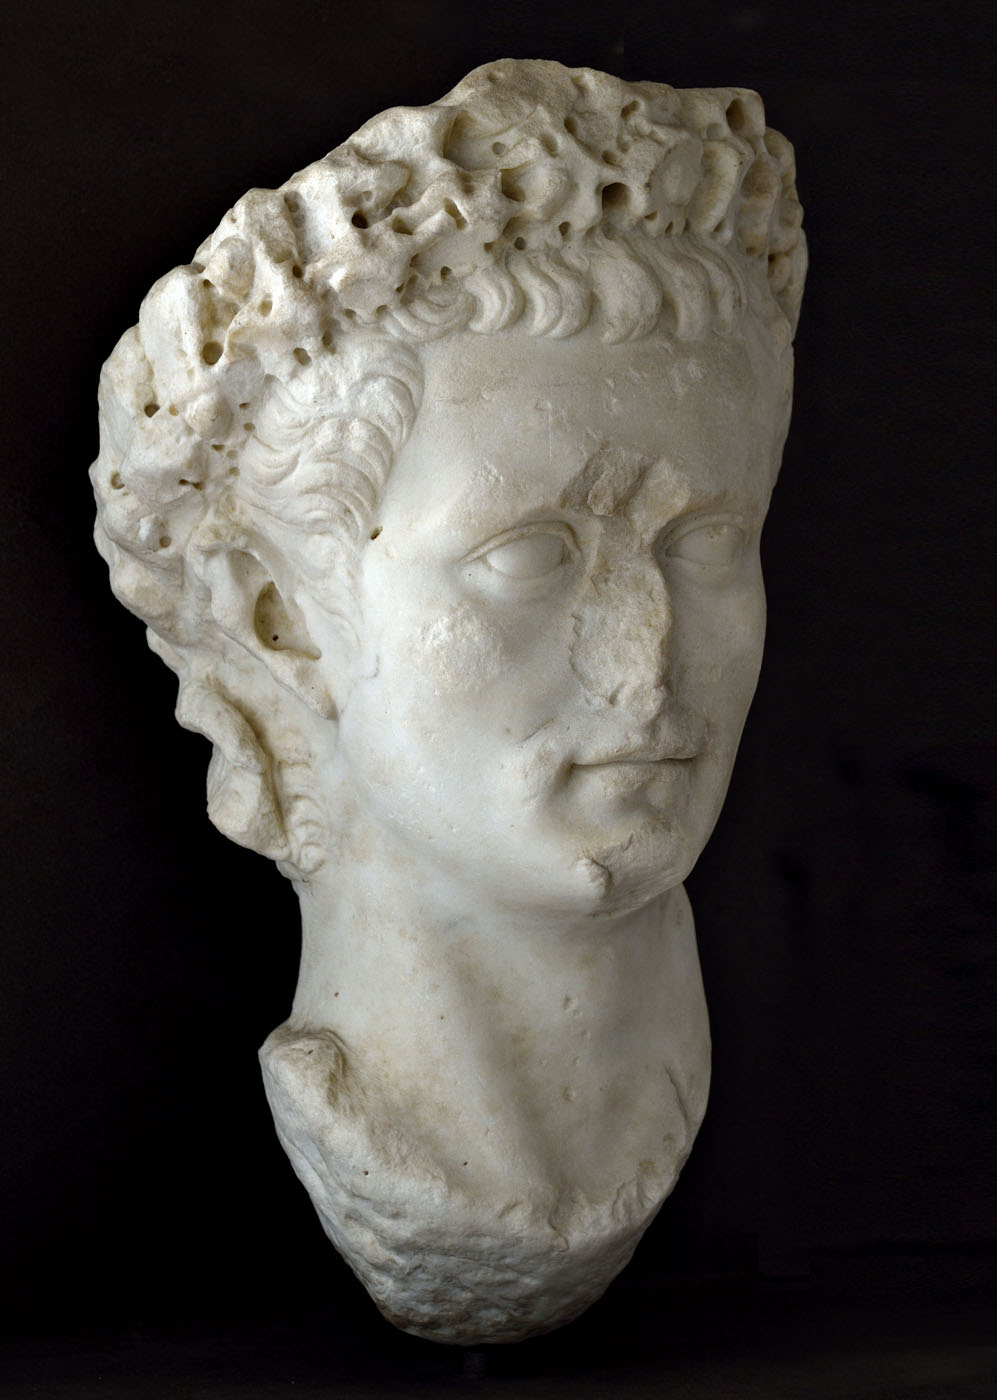 Caligula with civic crown (corona civica). White marble of greek provenance (thasian?). Rome, 37—41 CE. Inv. No. 14. 37. Baia, Archaeological Museum of the Phlegraean Fields